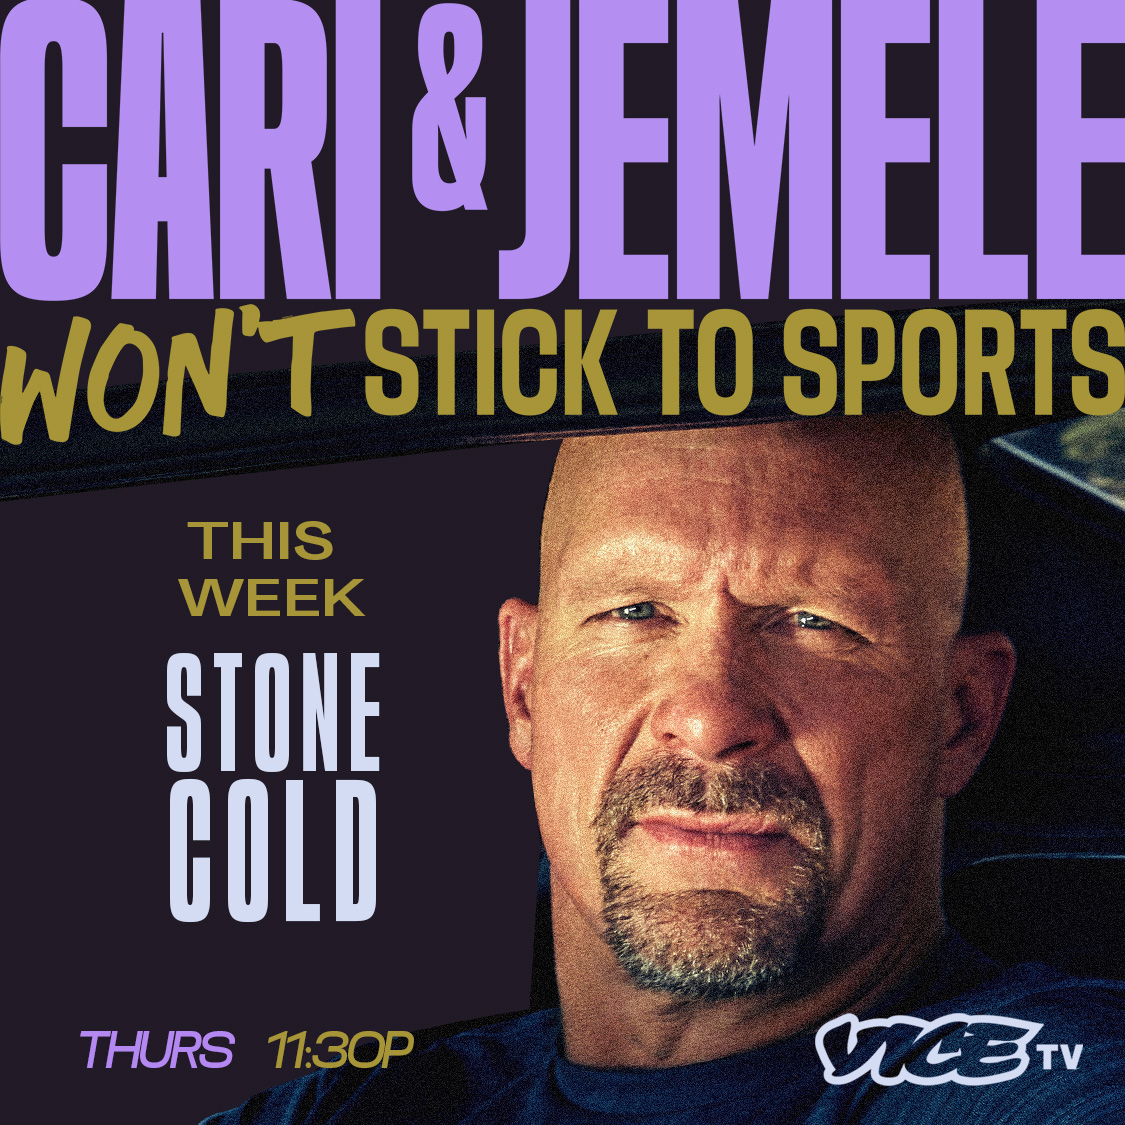 Tonight at 11:30p on @CariChampion & @jemelehill WON'T STICK TO SPORTS, the tag team you never saw coming:  @steveaustinBSR  @RepMaxineWaters   #WontStickToSports